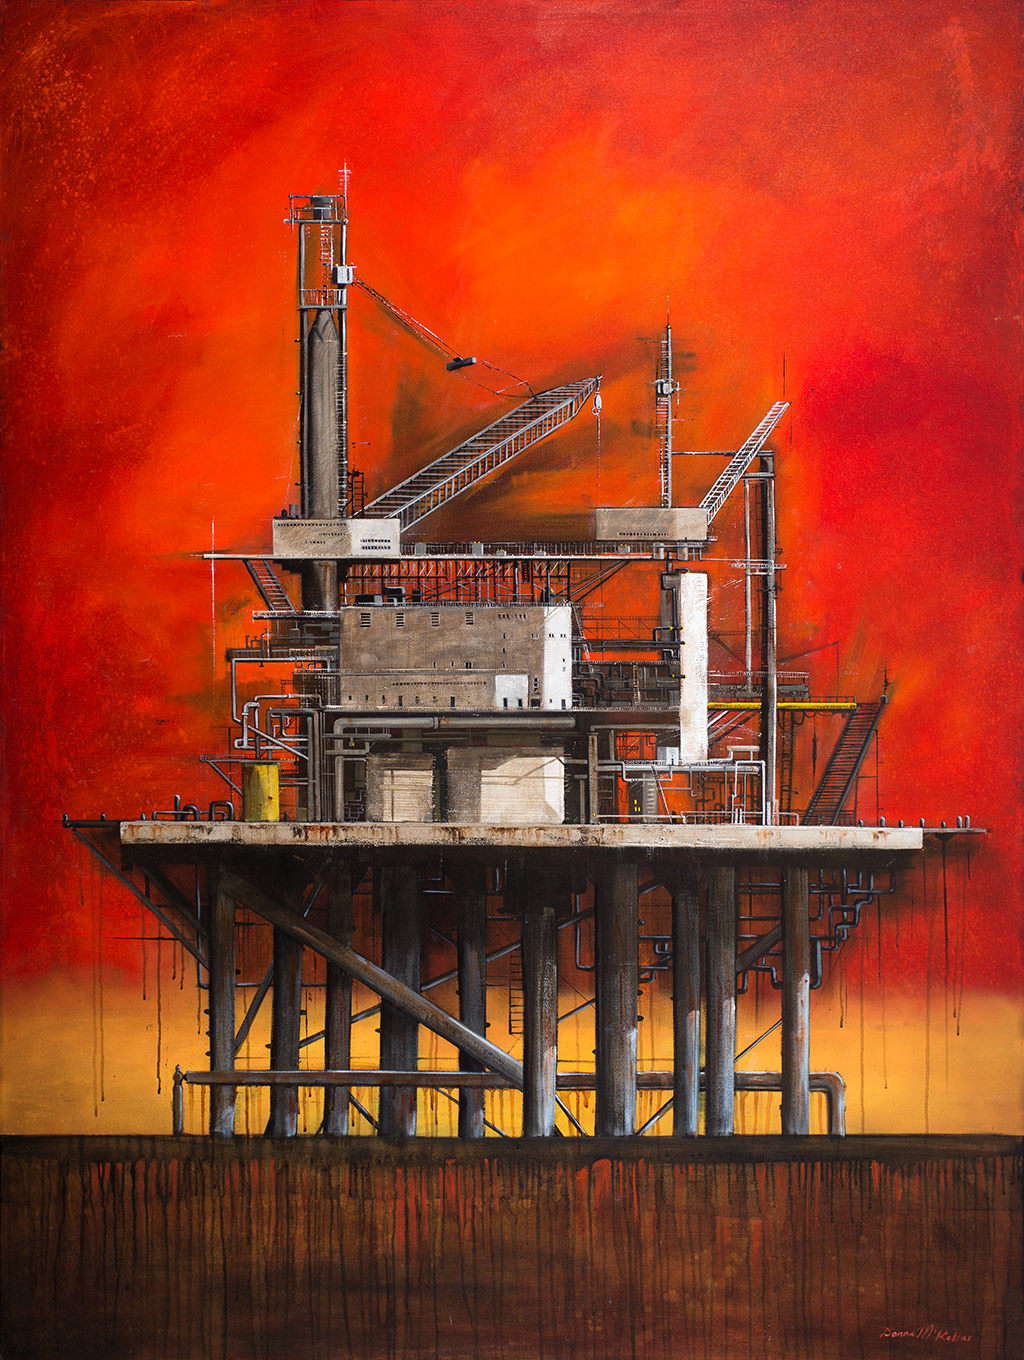 Oil Rig 1 (674) by Donna Mckellar, artist print on canvas.